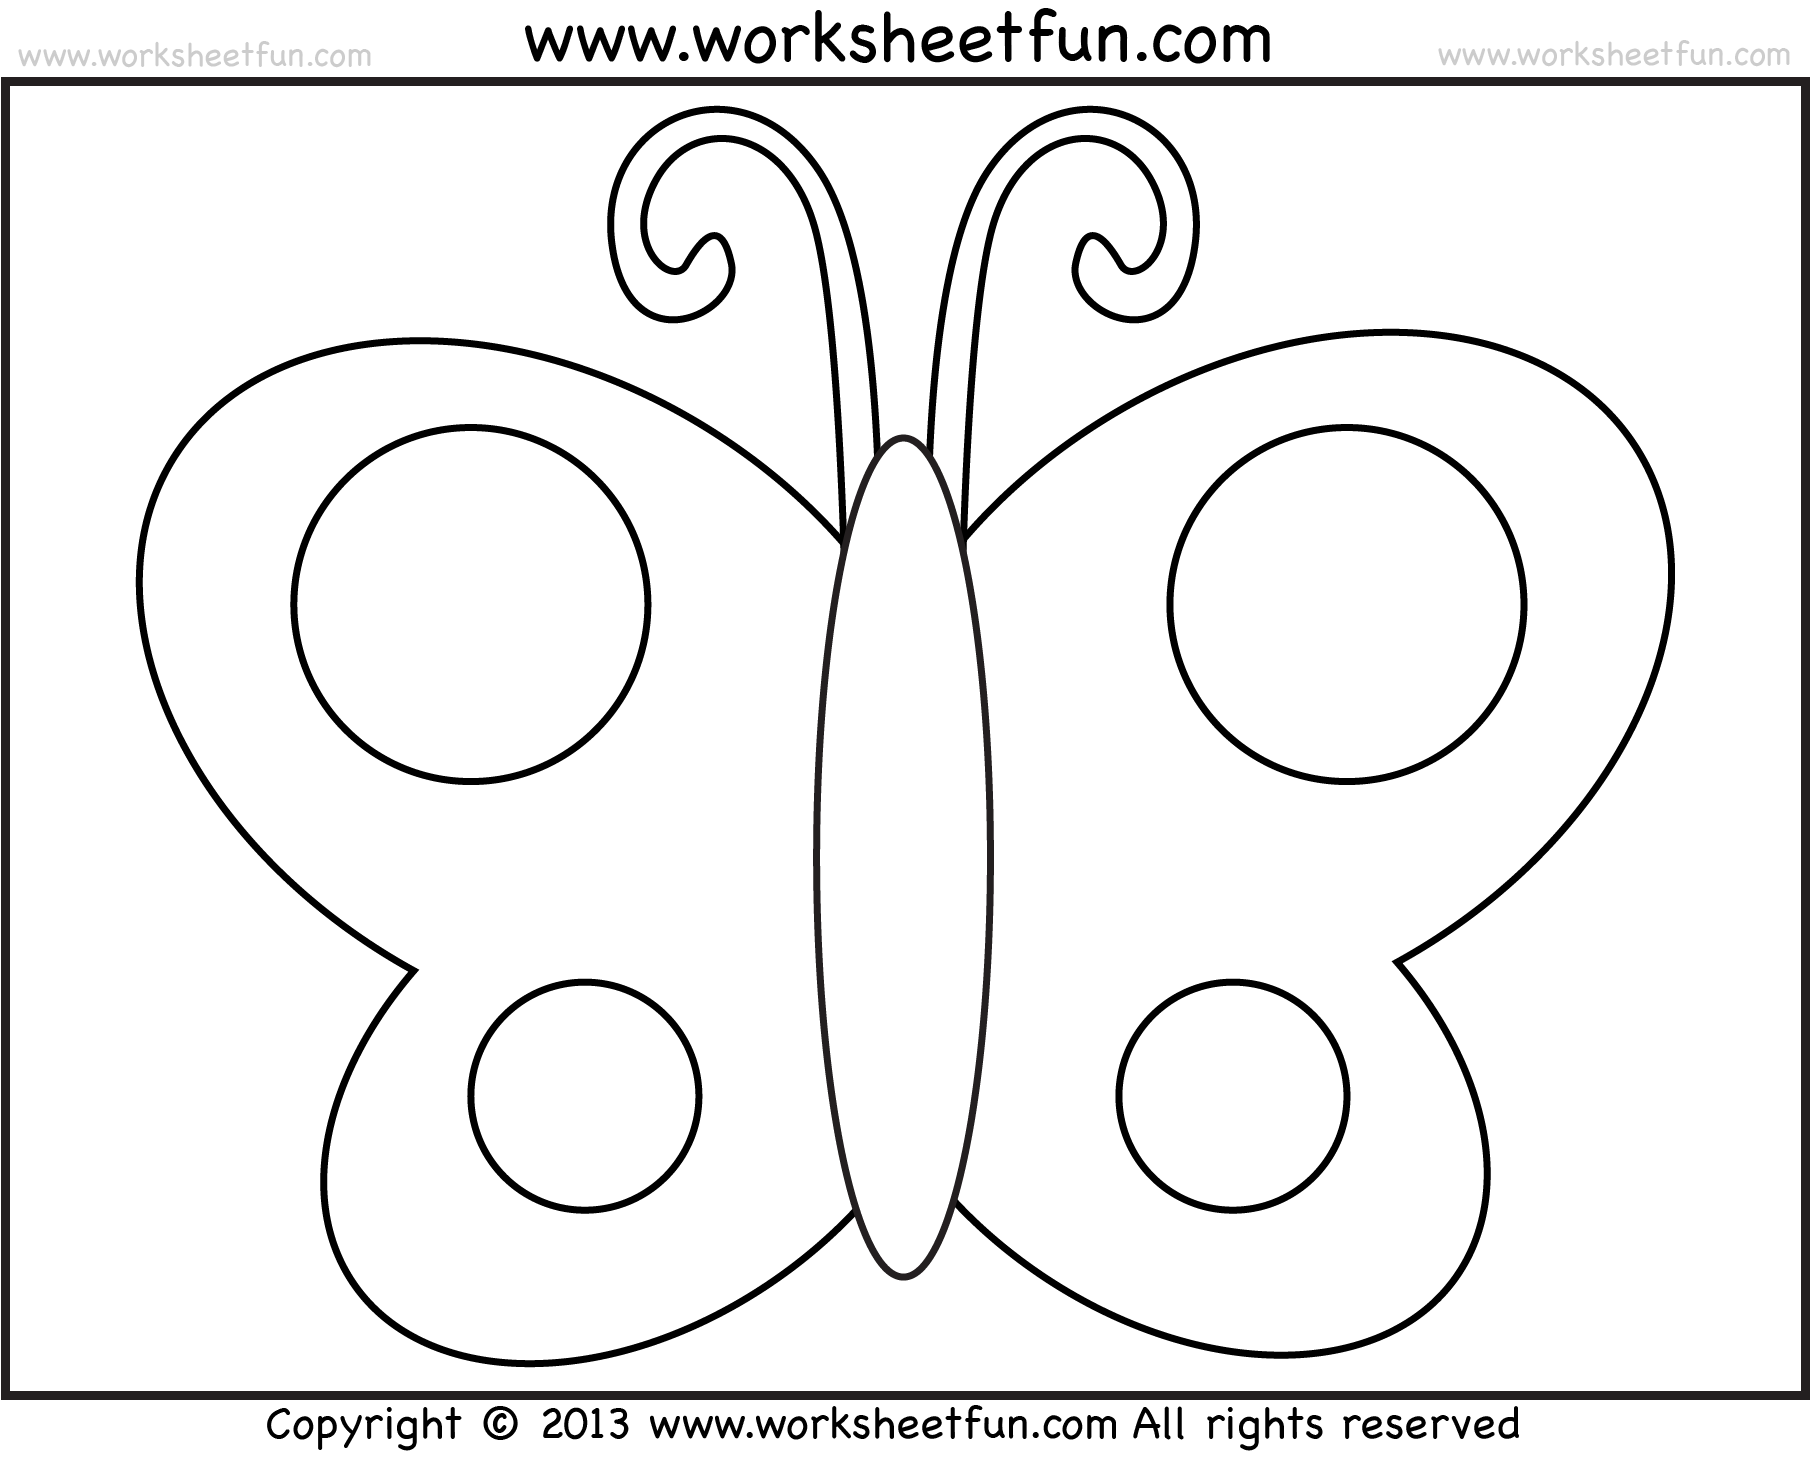 Kindergarten Drawing Worksheets at GetDrawings.com | Free for ...